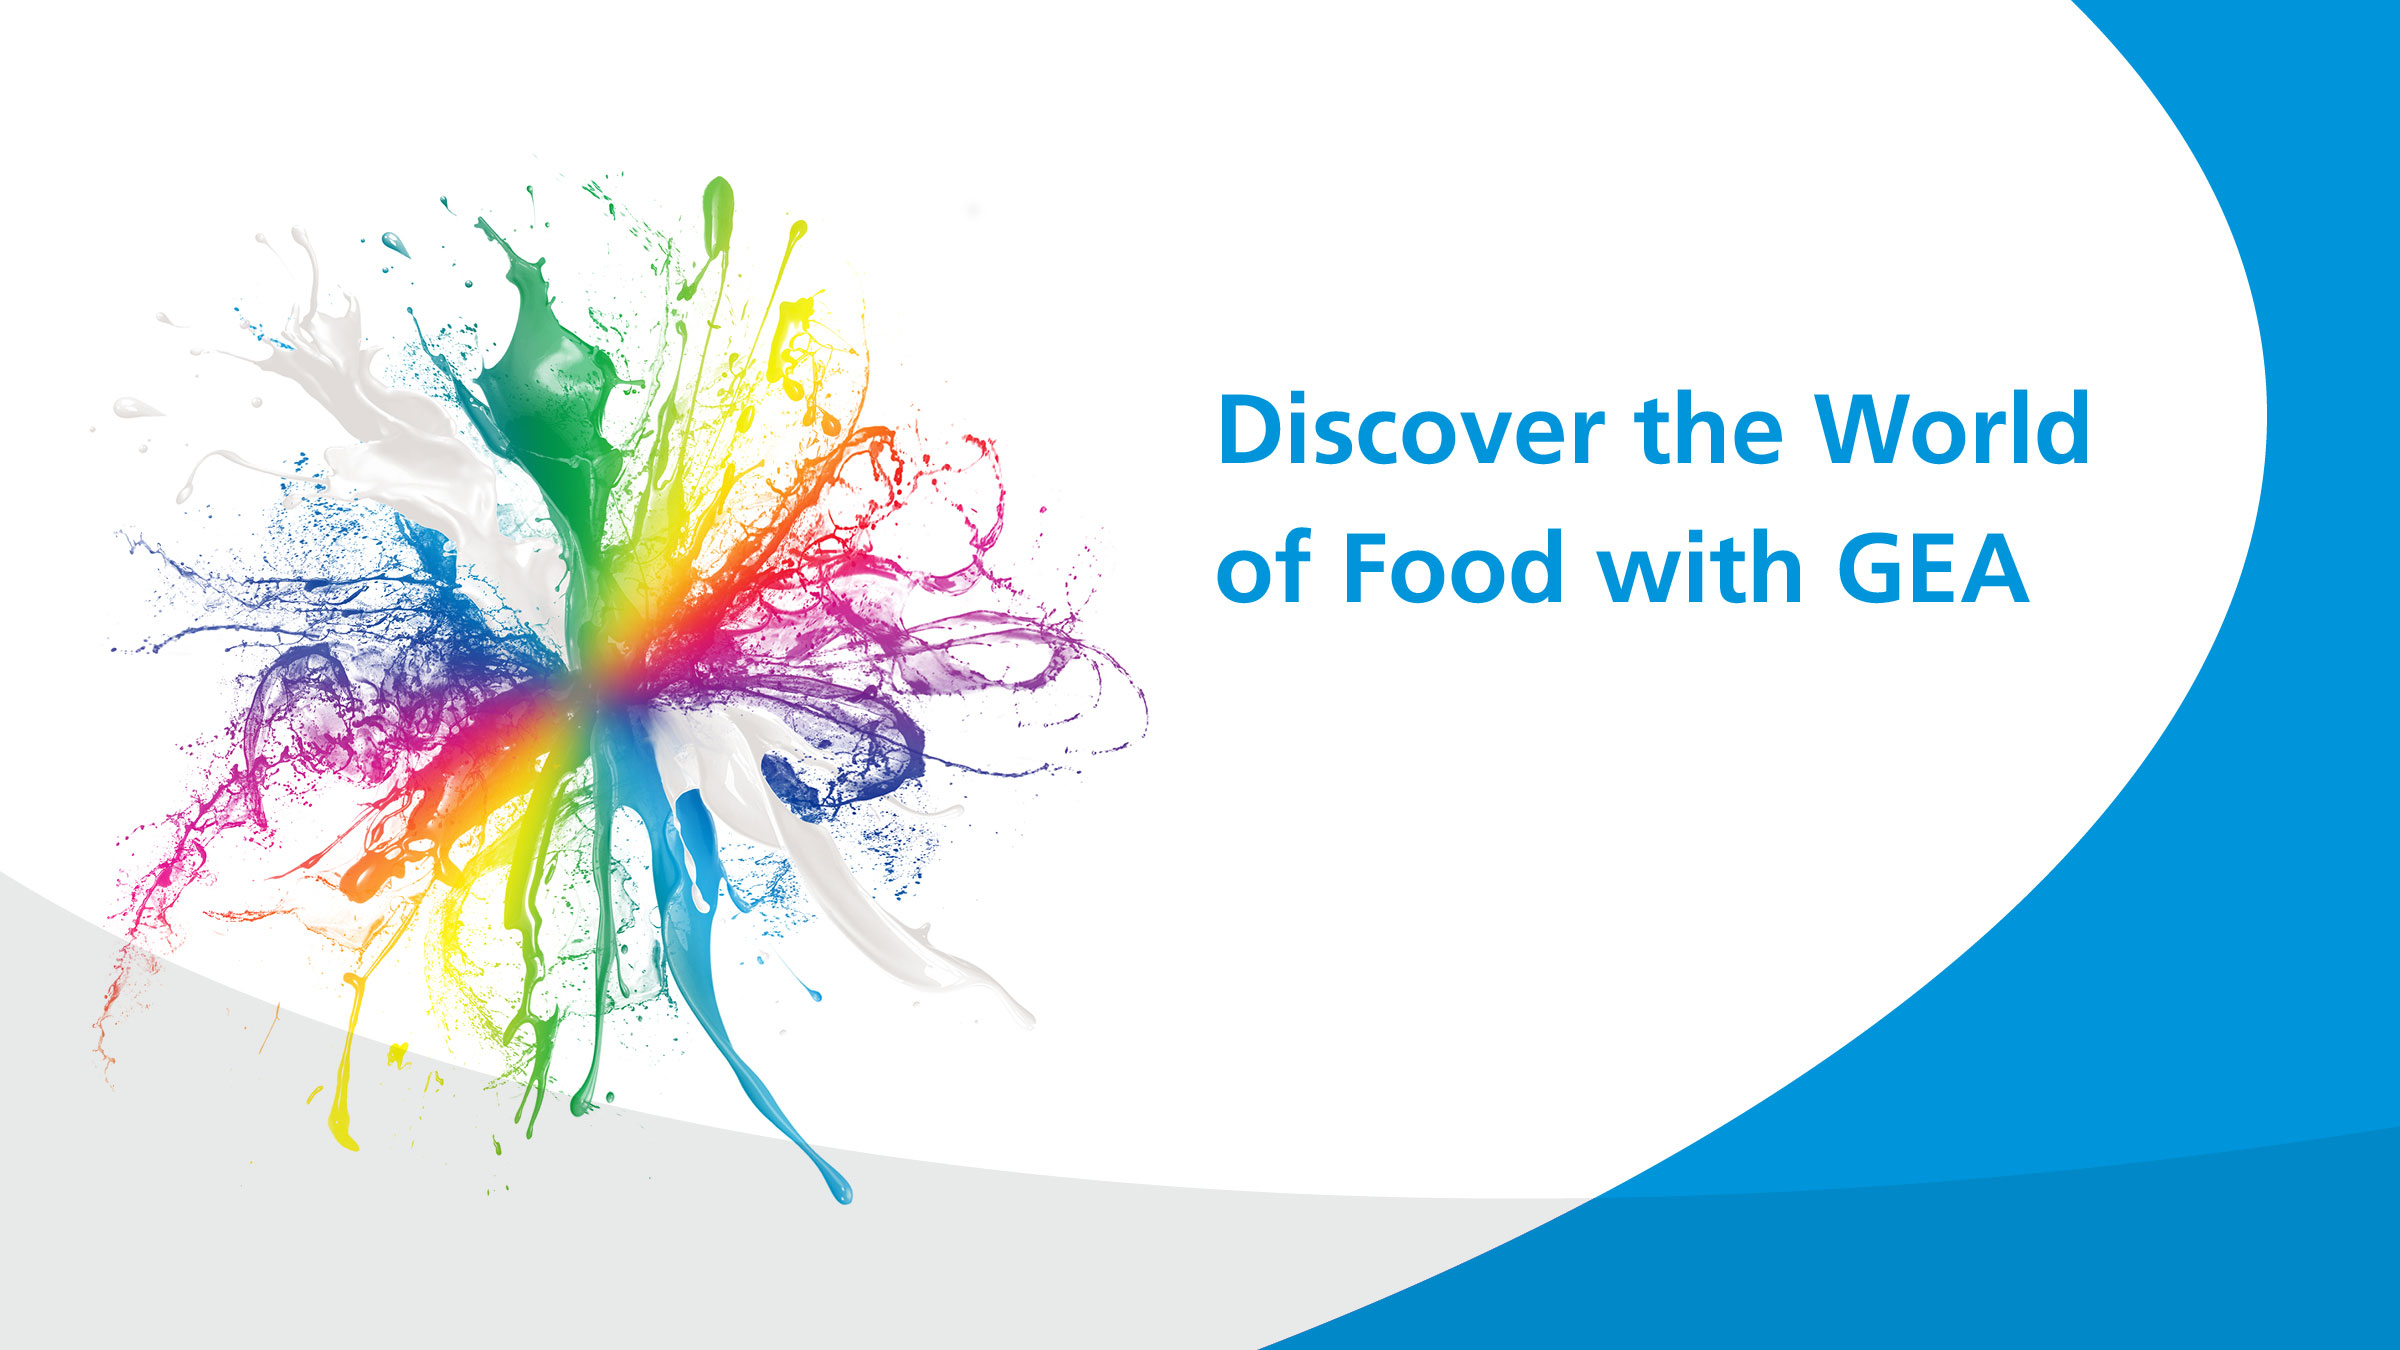 Discover the world of Food with GEA @ Anuga 2018